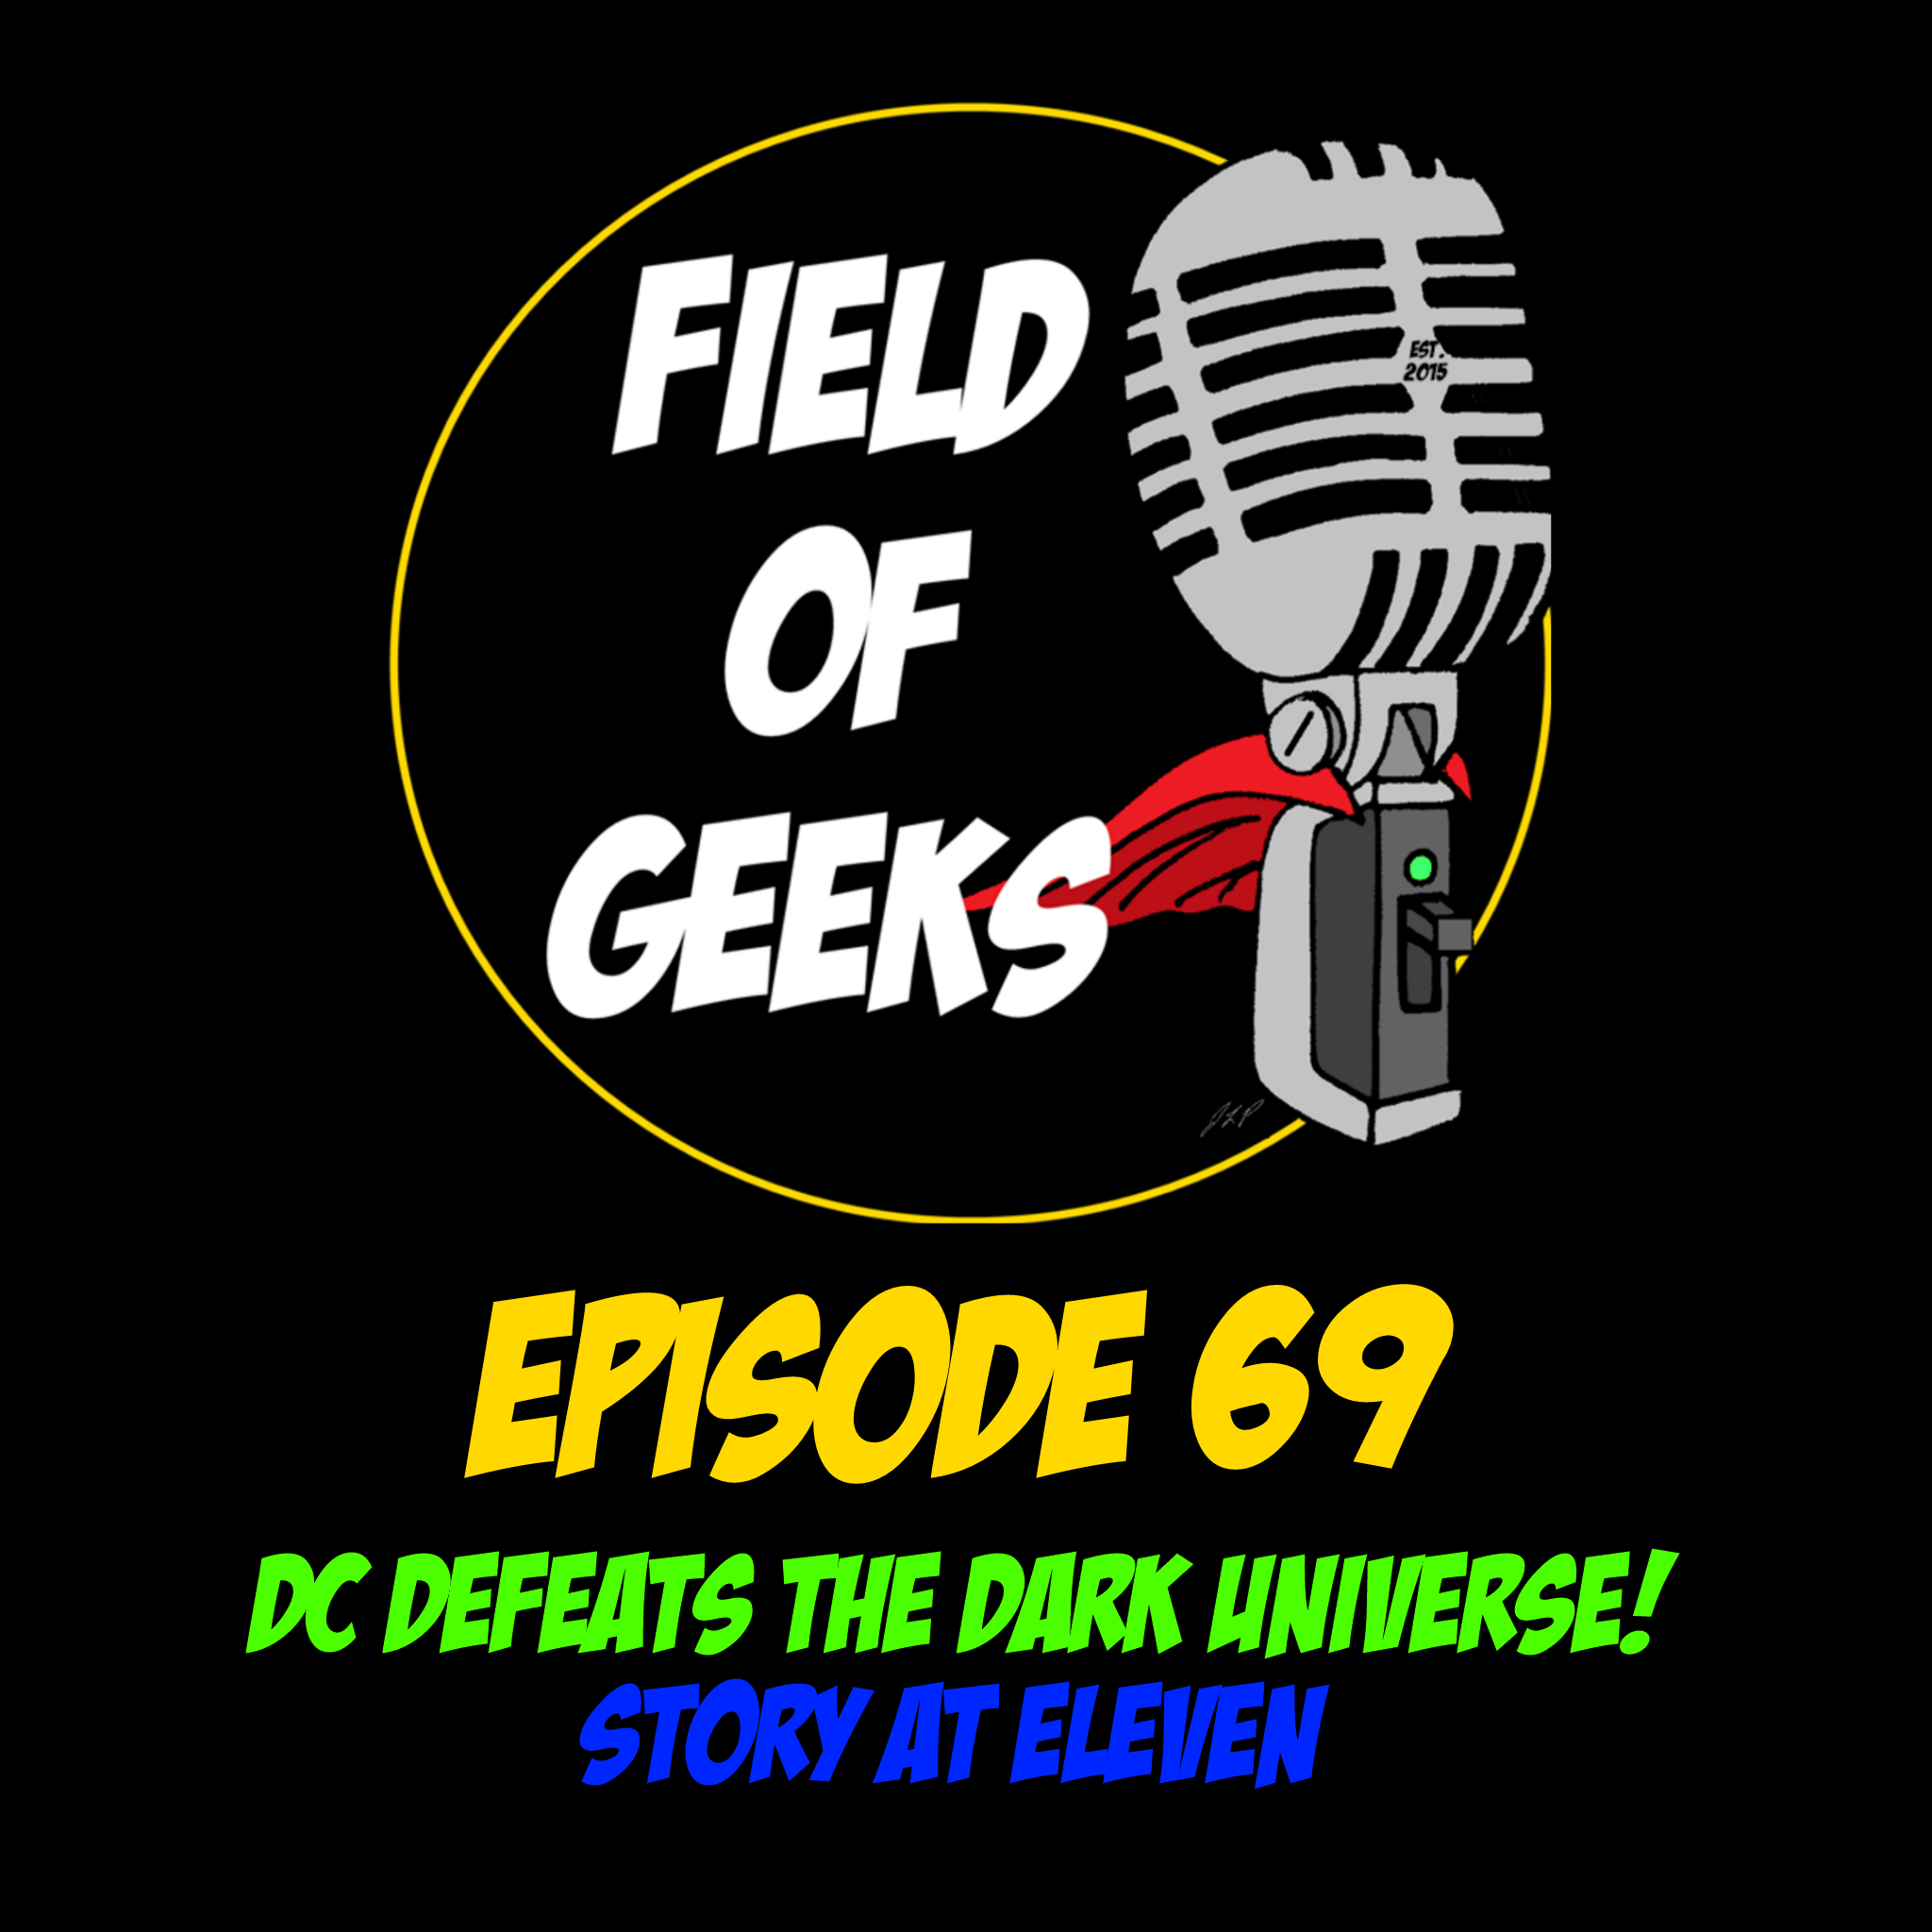 Episode 69 - DC Defeats the Dark Universe! Story at Eleven.